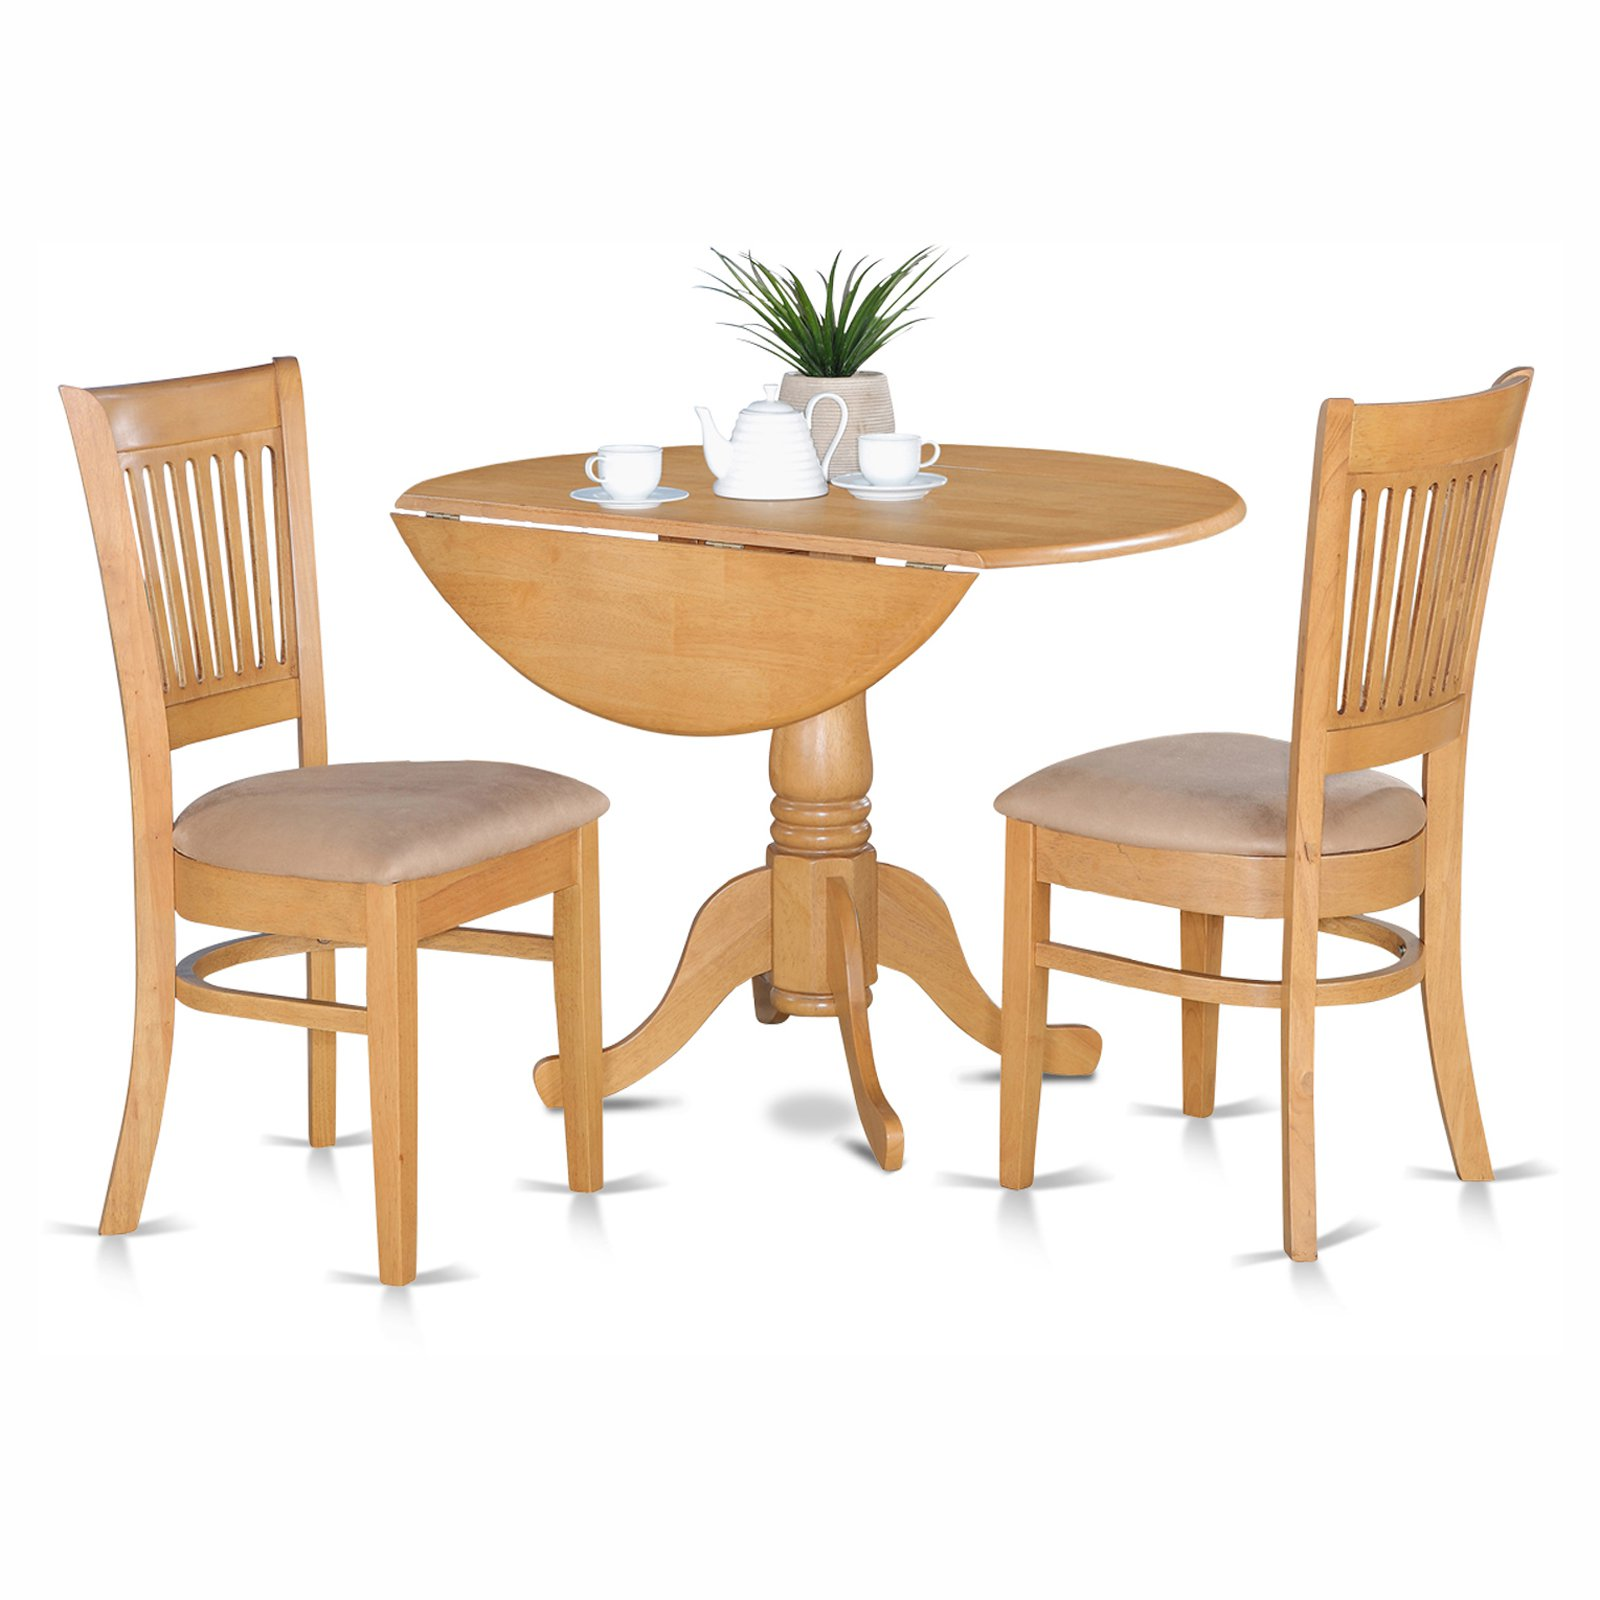 round table and chairs chair cover rentals bay area dining sets walmart com product image east west furniture dublin 3 piece drop leaf set with vancouver microfiber seat